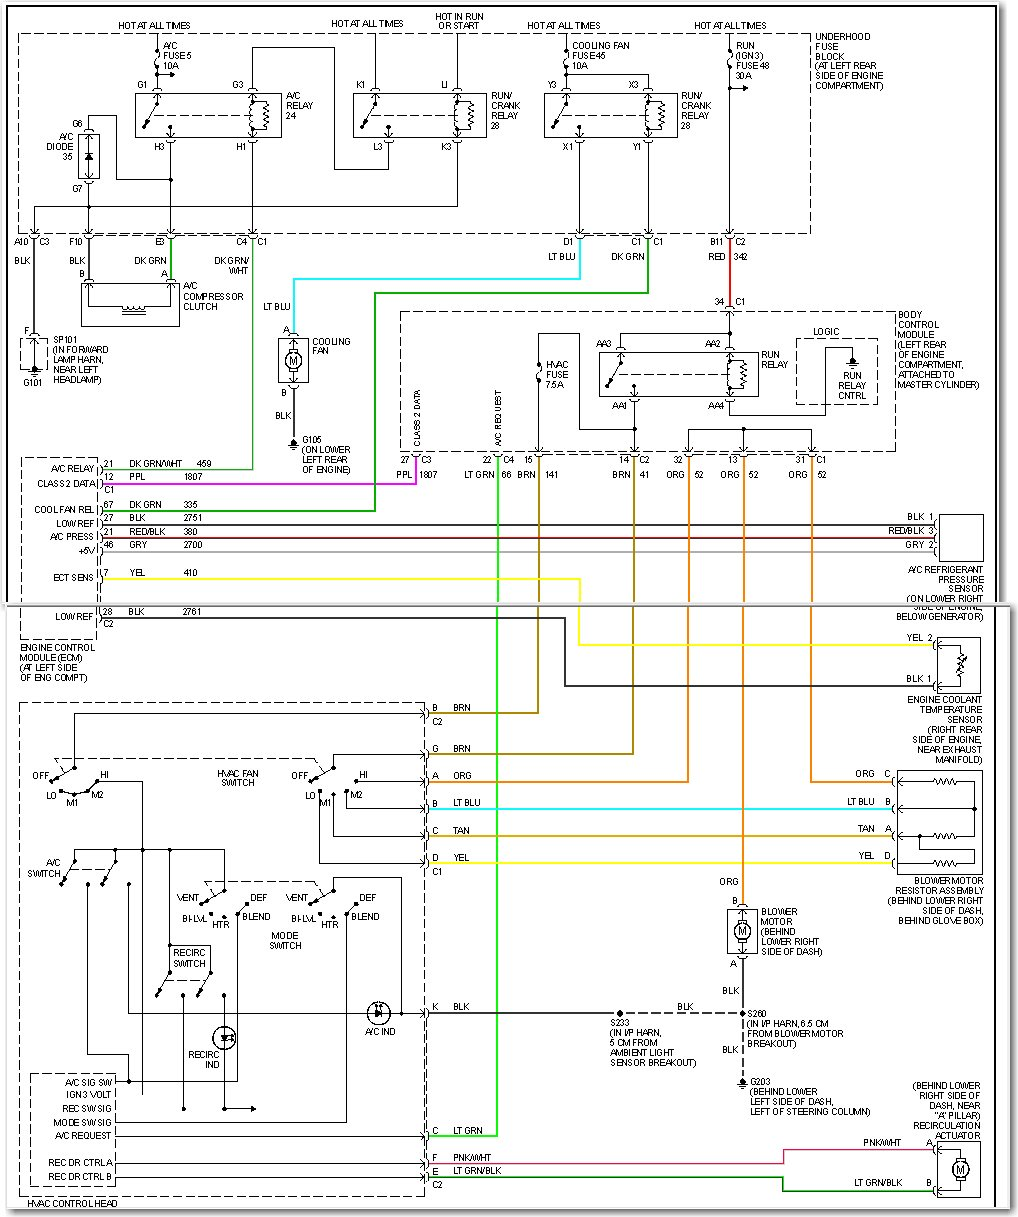 2004 Saturn Ion Stereo Wiring Diagram from static-cdn.imageservice.cloud